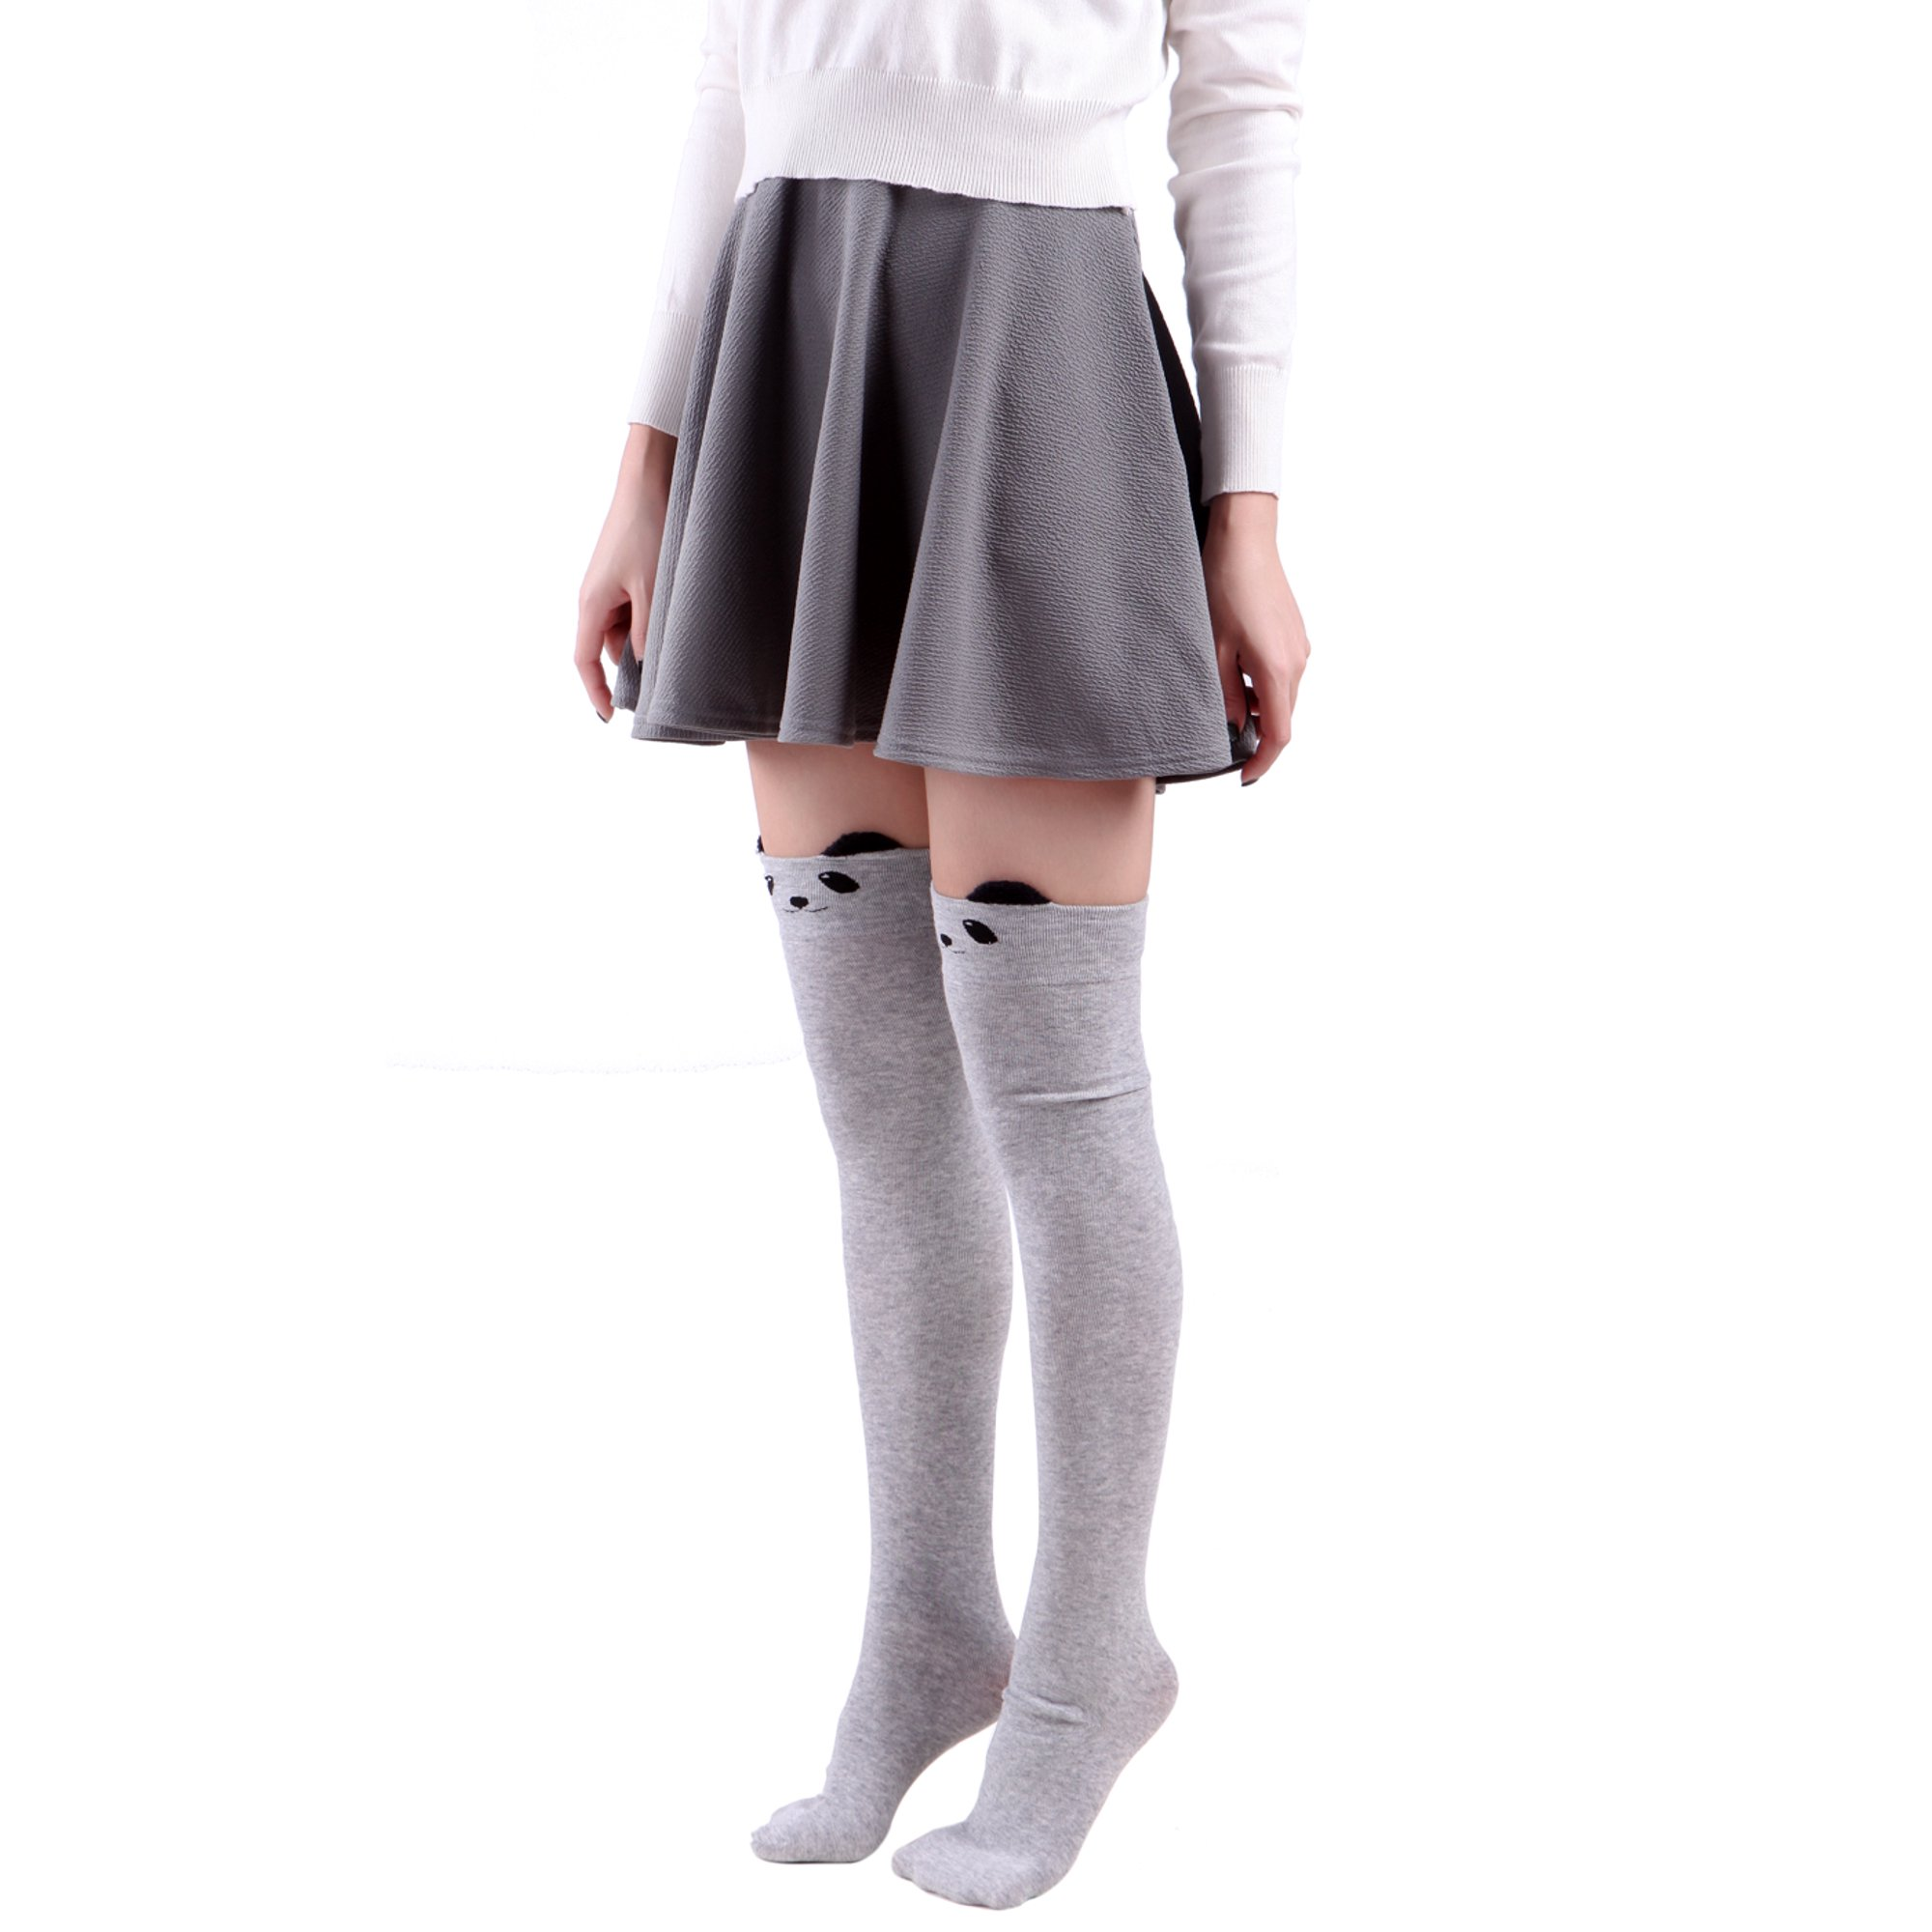 06abe94f498 HDE Women s Animal Over Knee Thigh High Socks Stockings with Ears (Gray  Panda)